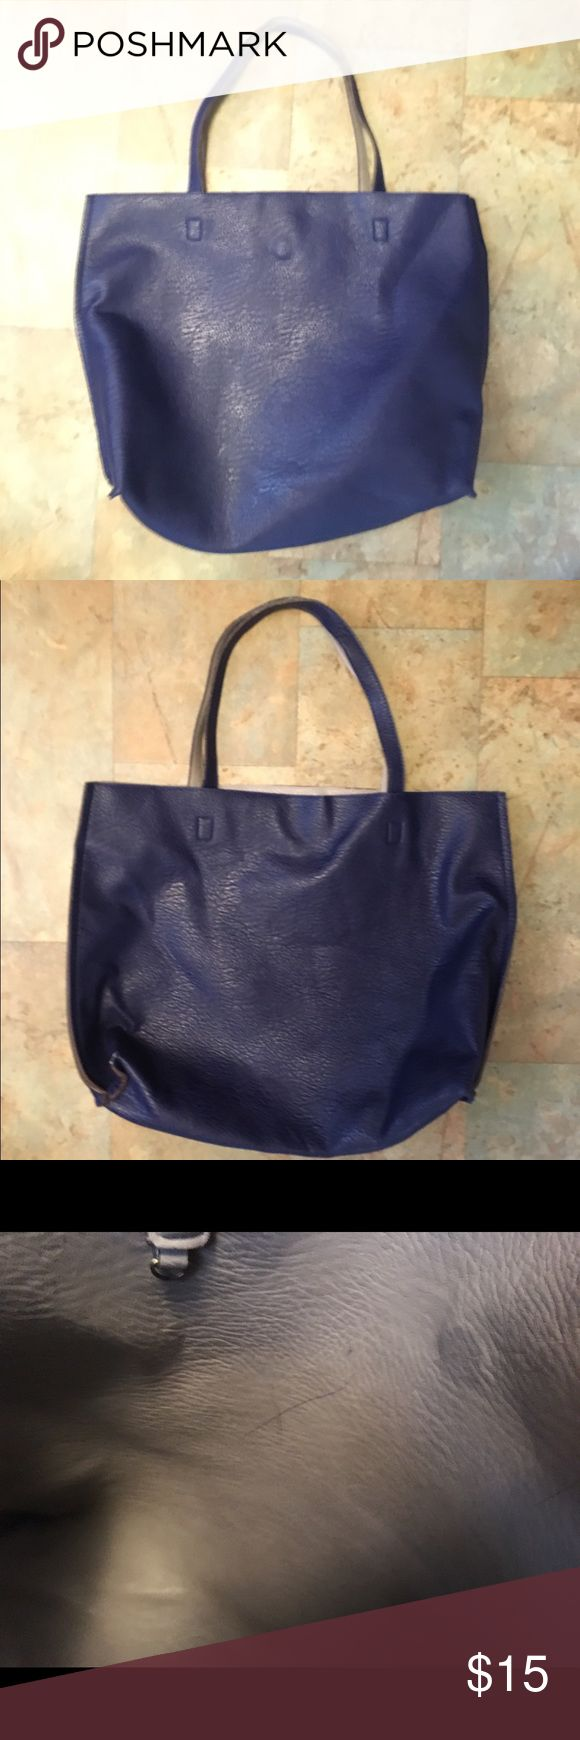 Navy Blue AEO Tote Large American Eagle Outfitters tote bag- magnet closure- some pen marks and wear on the inside- comment with any questions 💎 American Eagle Outfitters Bags Totes